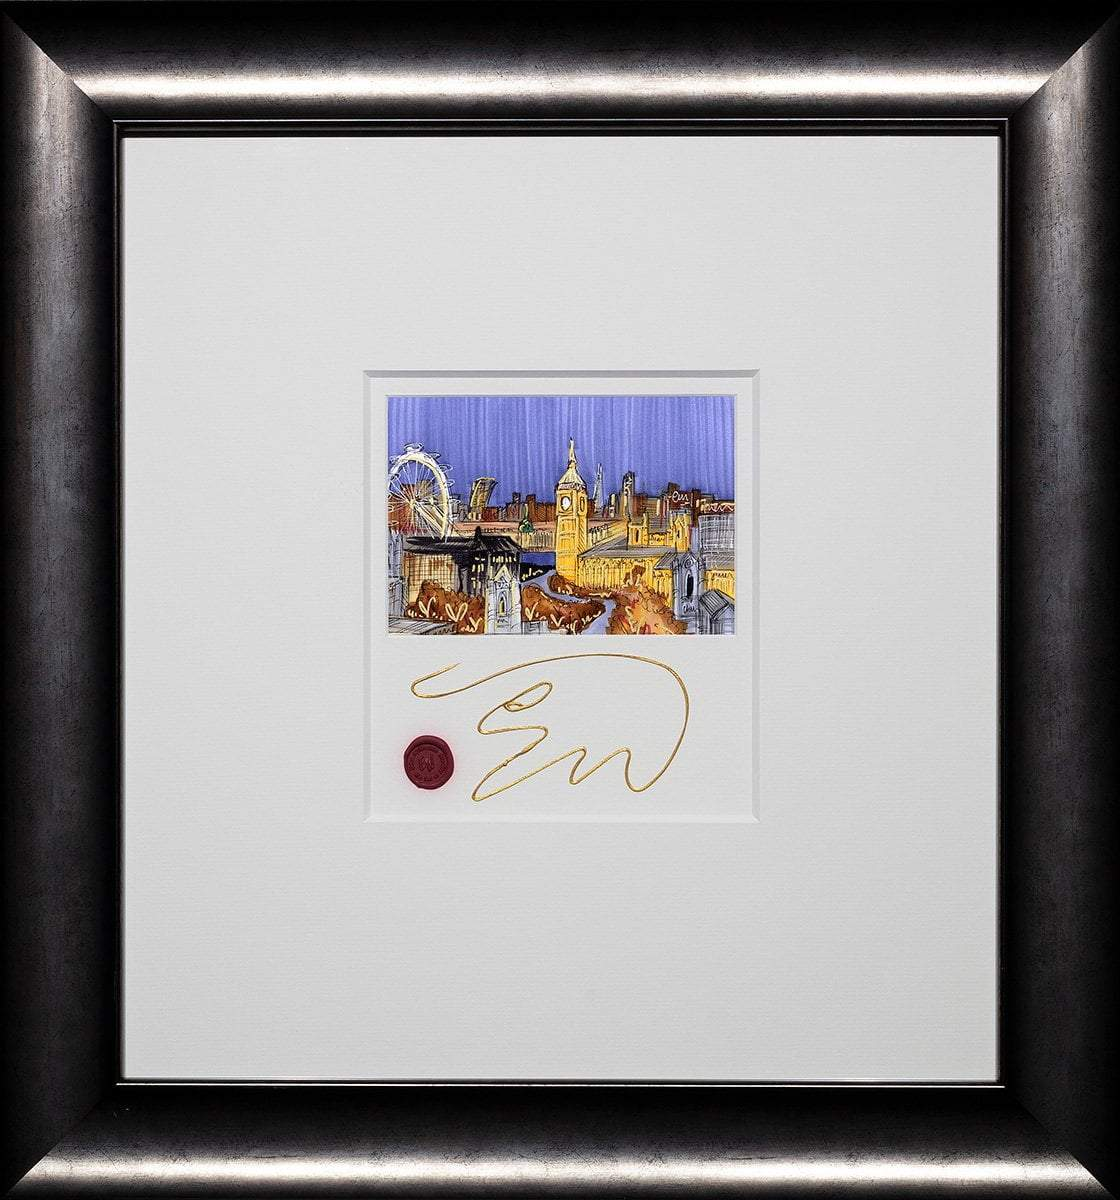 A Rooftop View - Original Edward Waite Framed